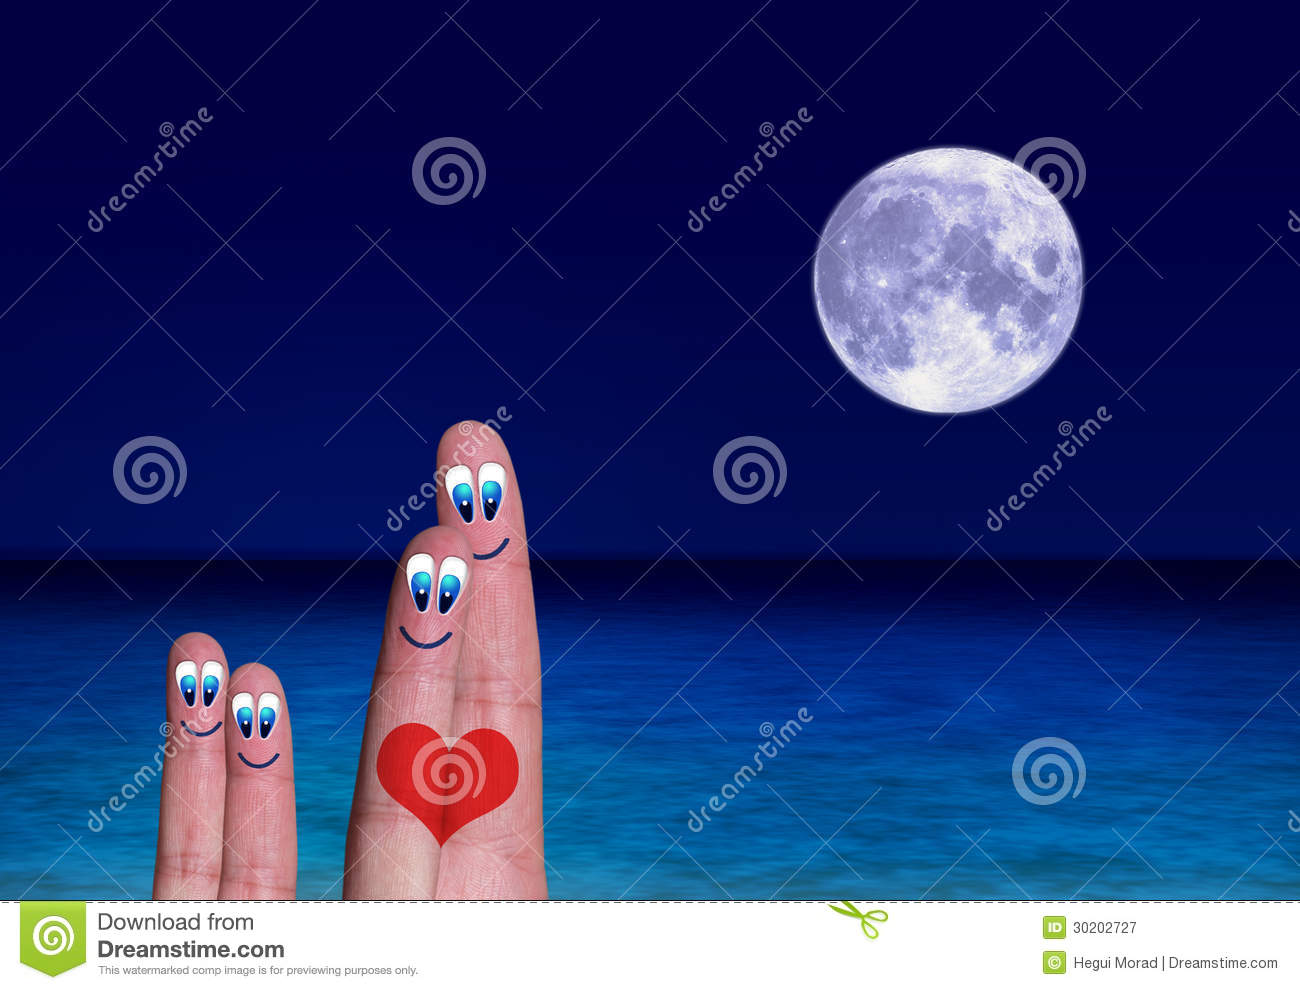 Kids at night with moon royalty free stock photography image - Lovers Connected By A Heart With Their Children Royalty Free Stock Photography